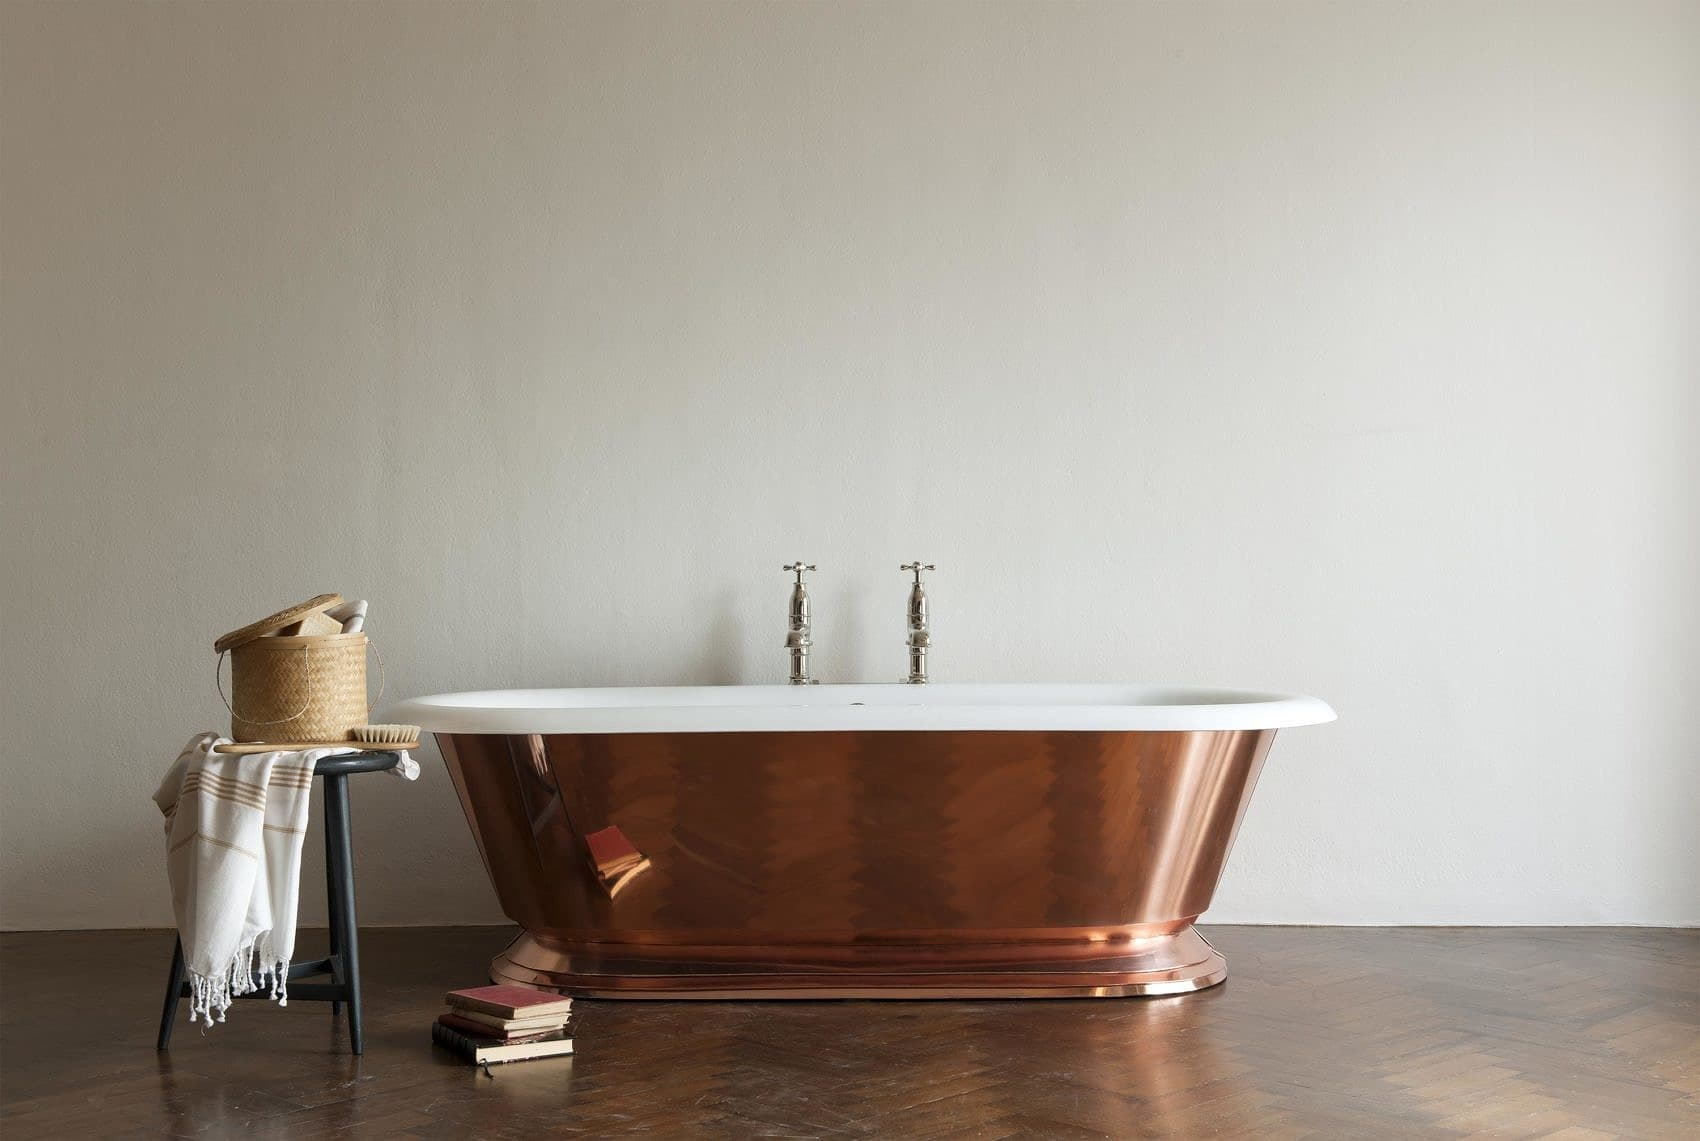 The Copper Tay cast iron skirted bath tub